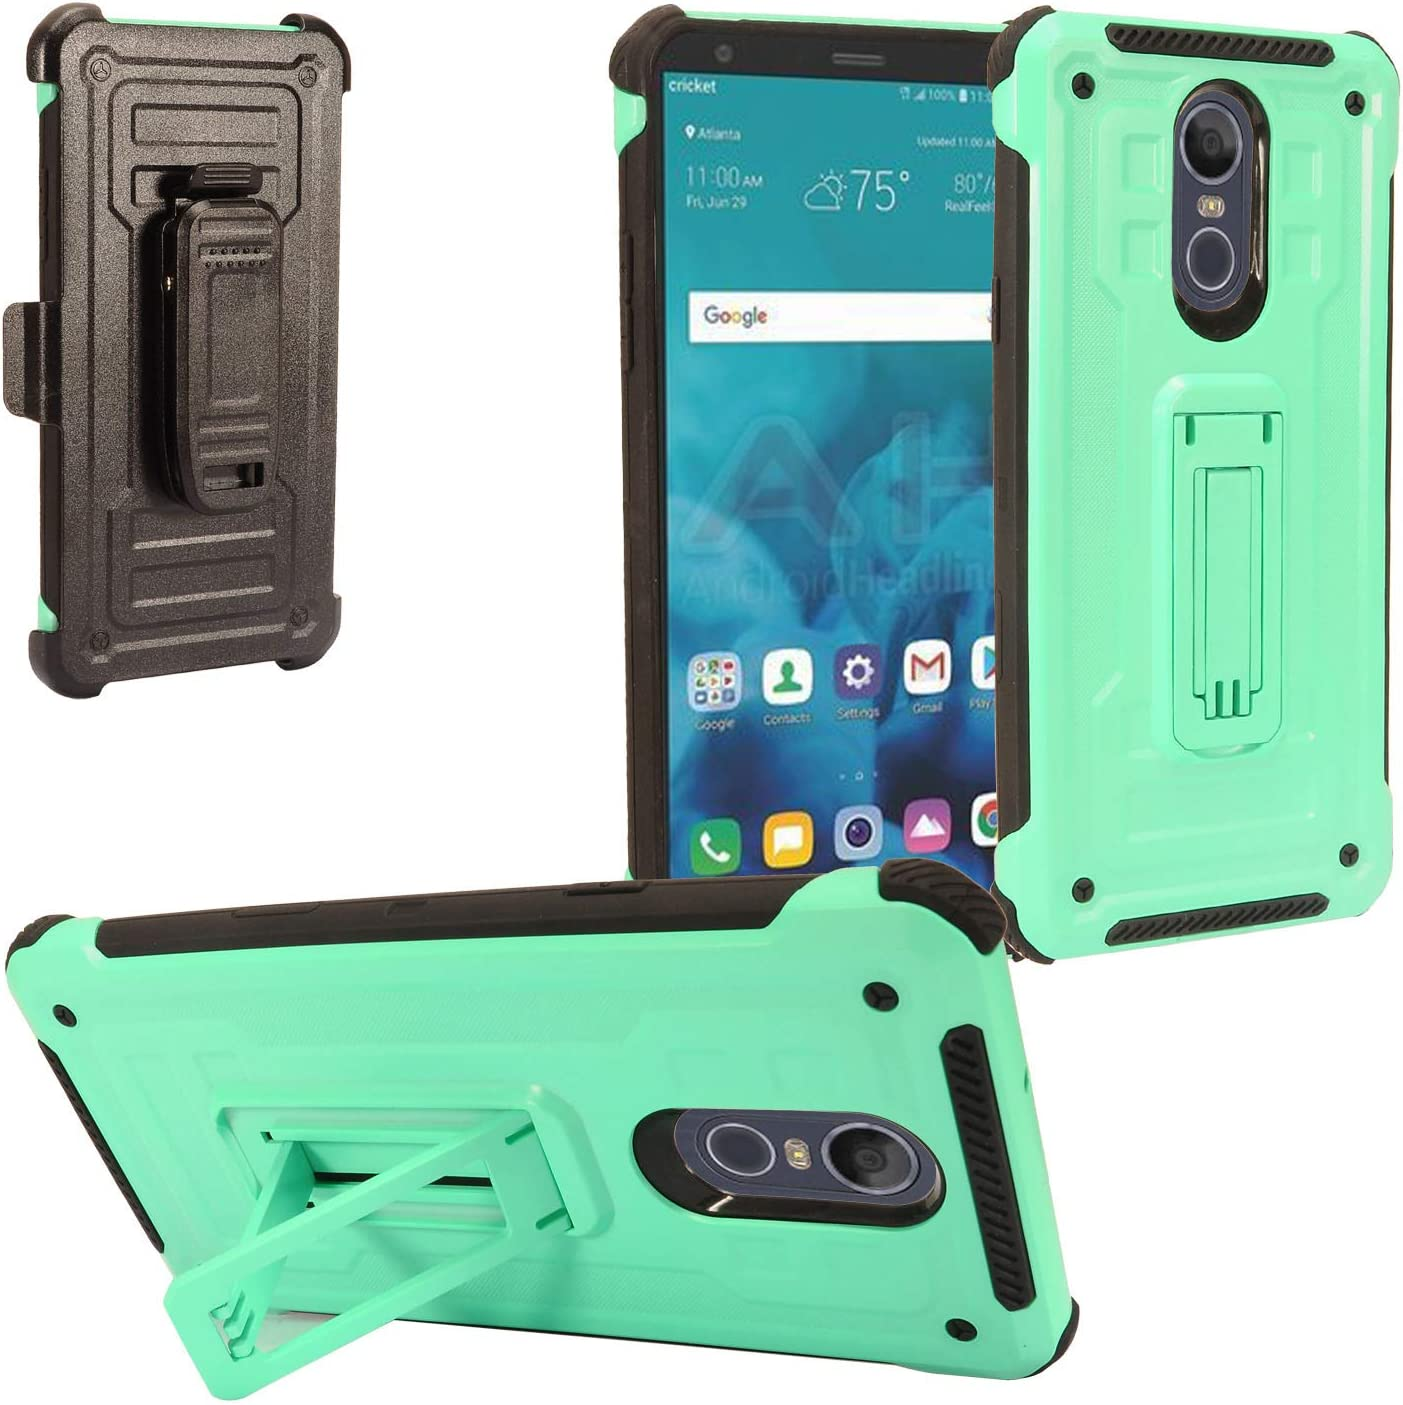 Z-GEN - LG Stylo 4 (2018), Stylo4+ Plus, LM-Q710, LM-L713DL - Hybrid Phone Case w/Stand/Belt Clip Holster + Tempered Glass Screen Protector - ST3 Mint